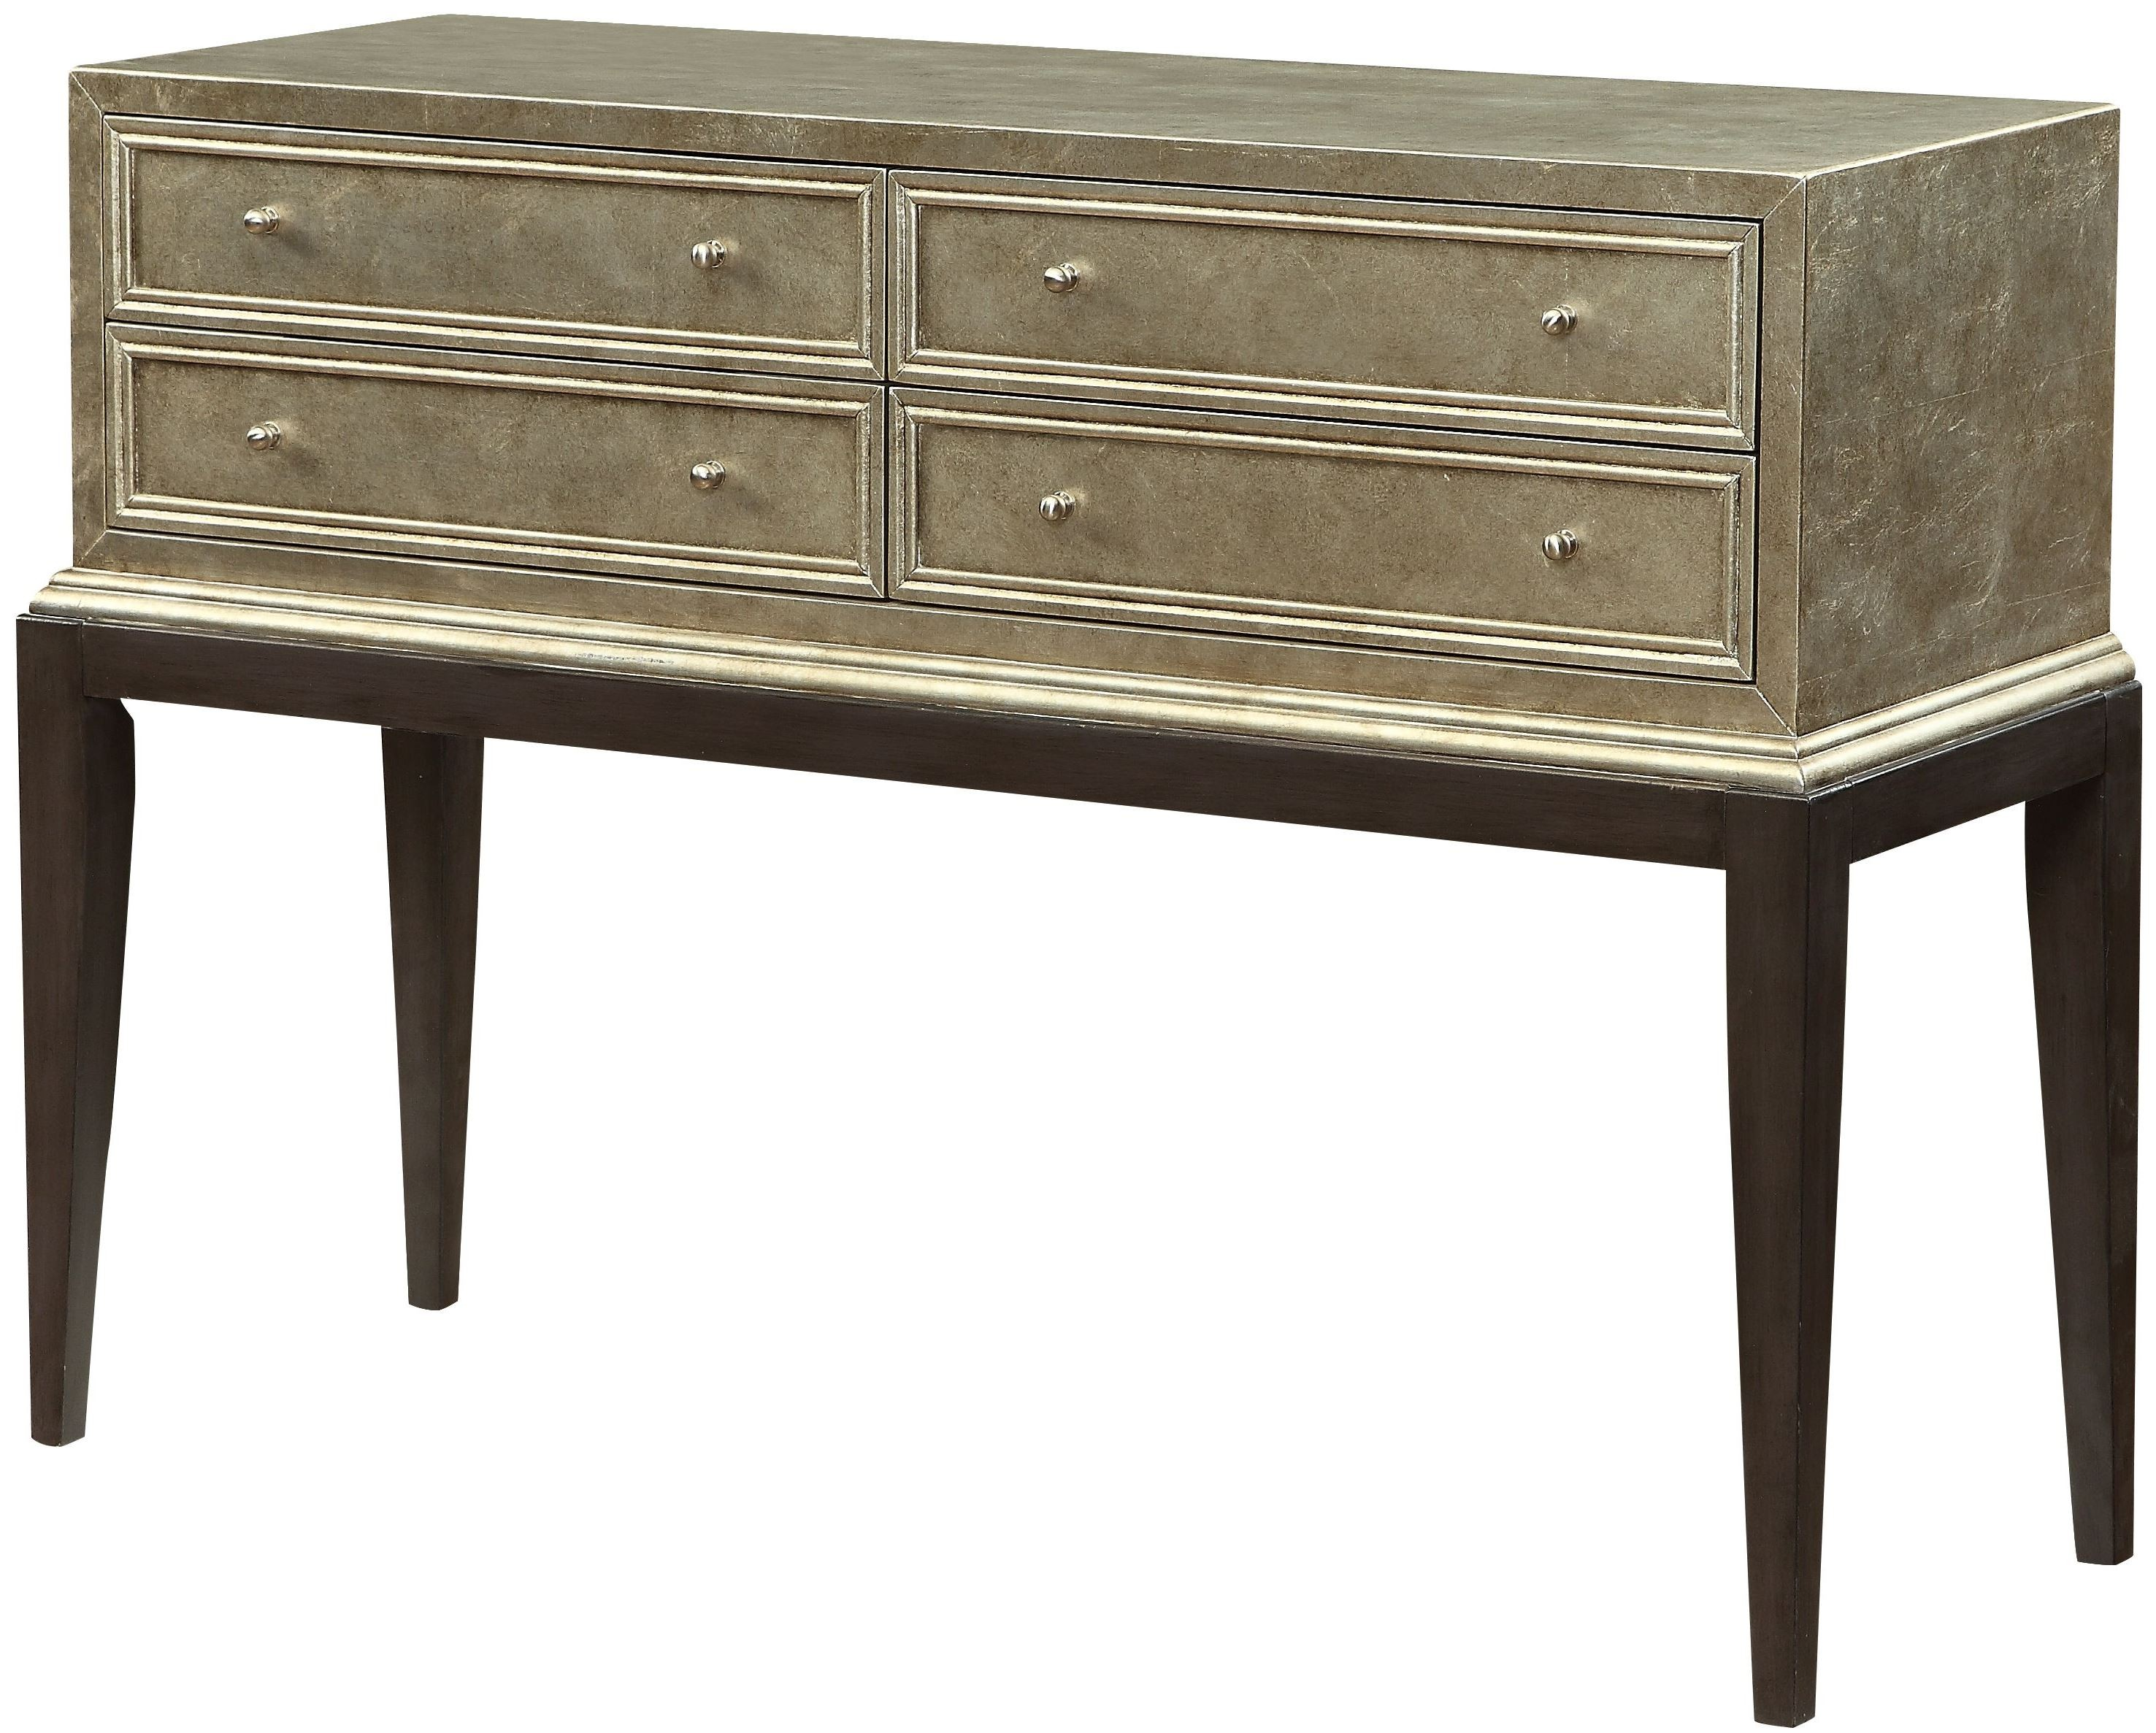 Silver Leaf 4 Drawer Console From Coast To Coast 78697 Coleman Furniture